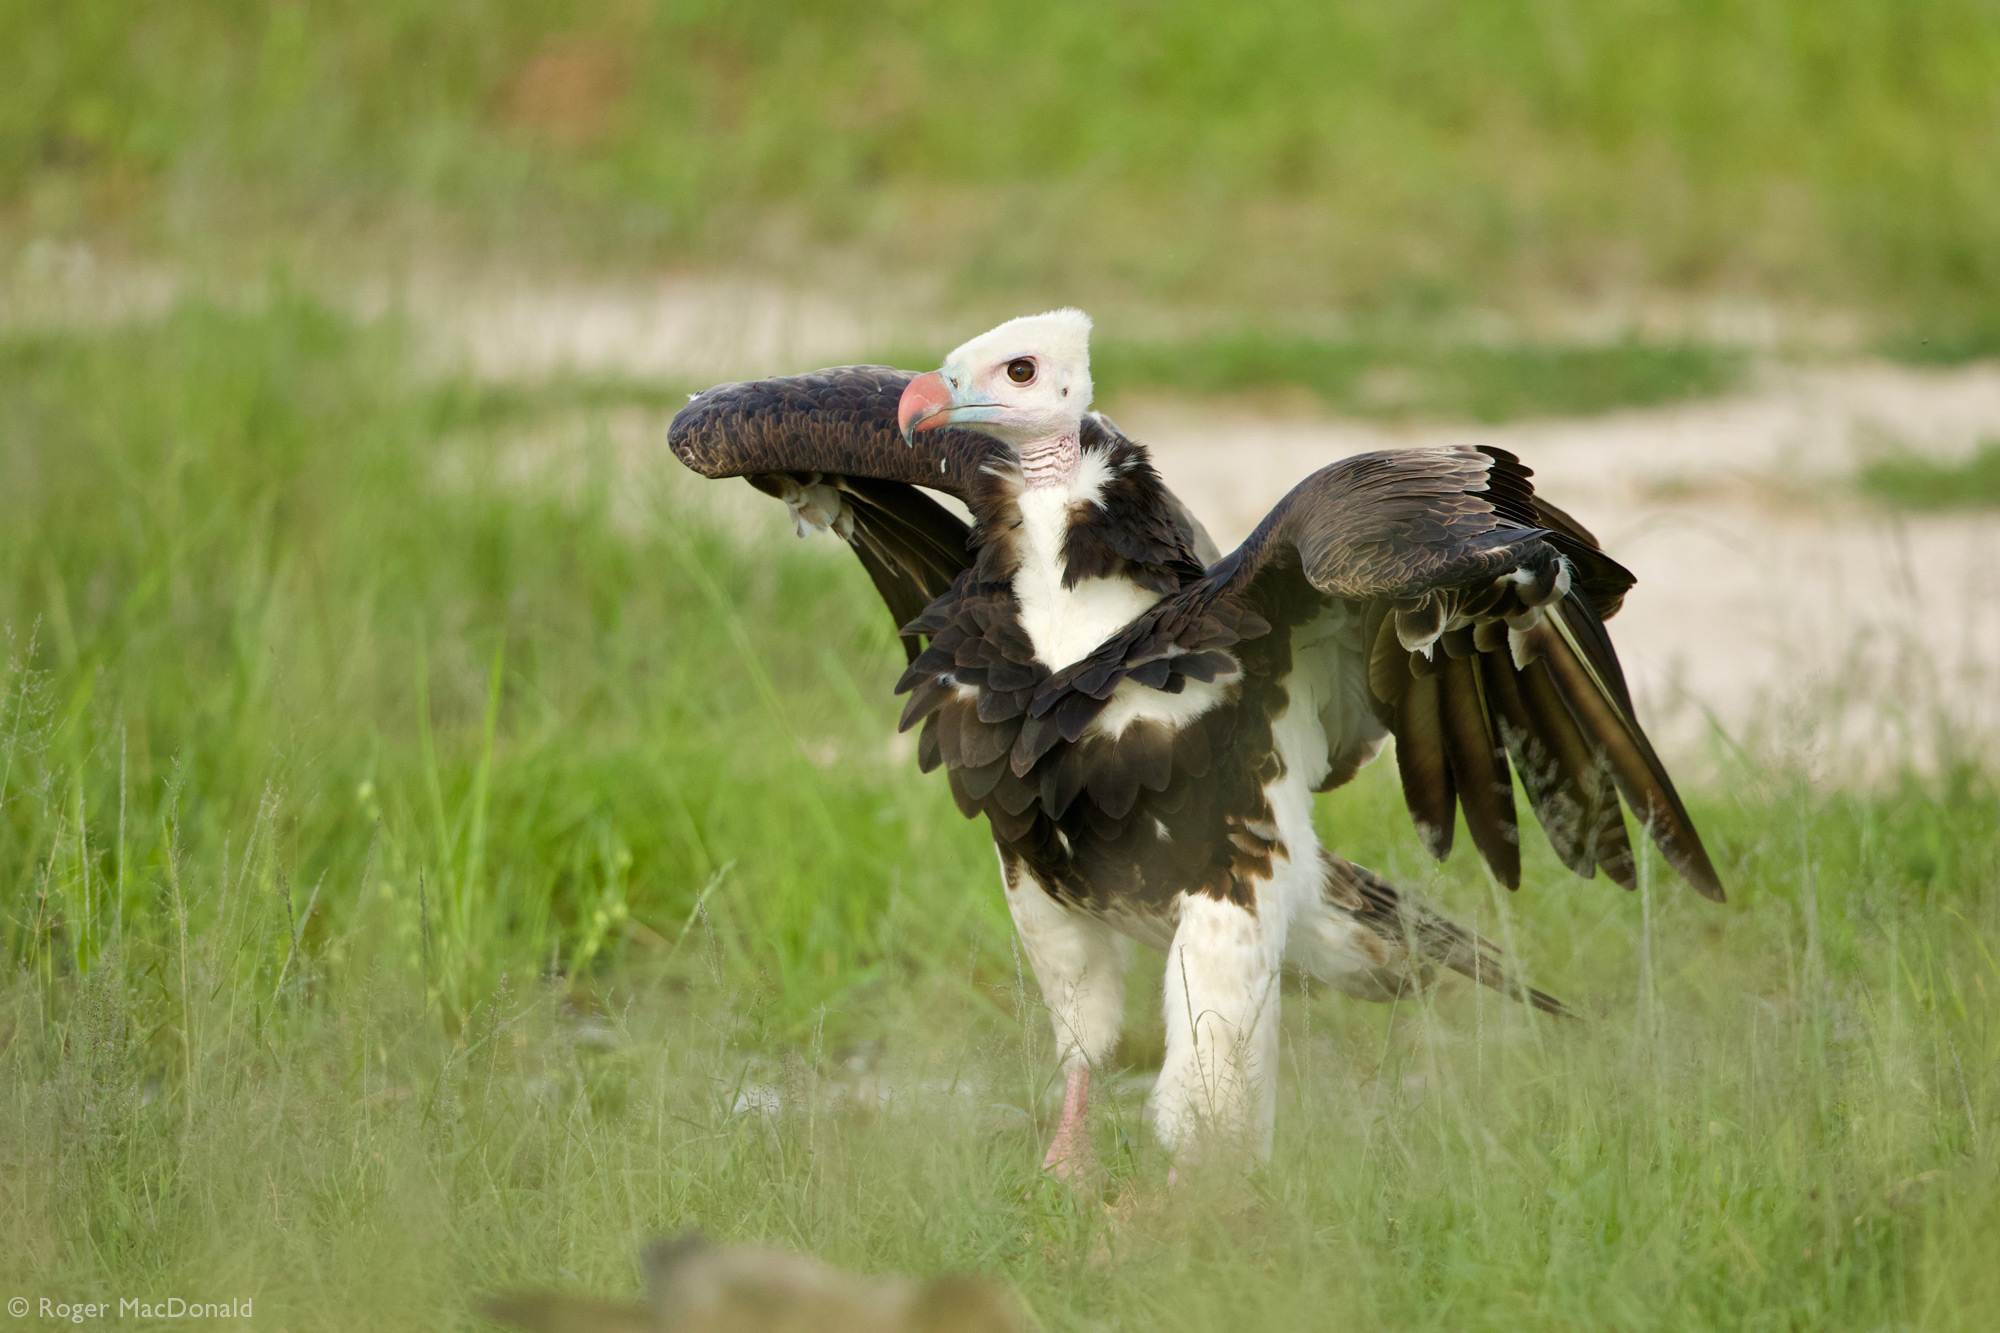 A white-headed vulture on the ground